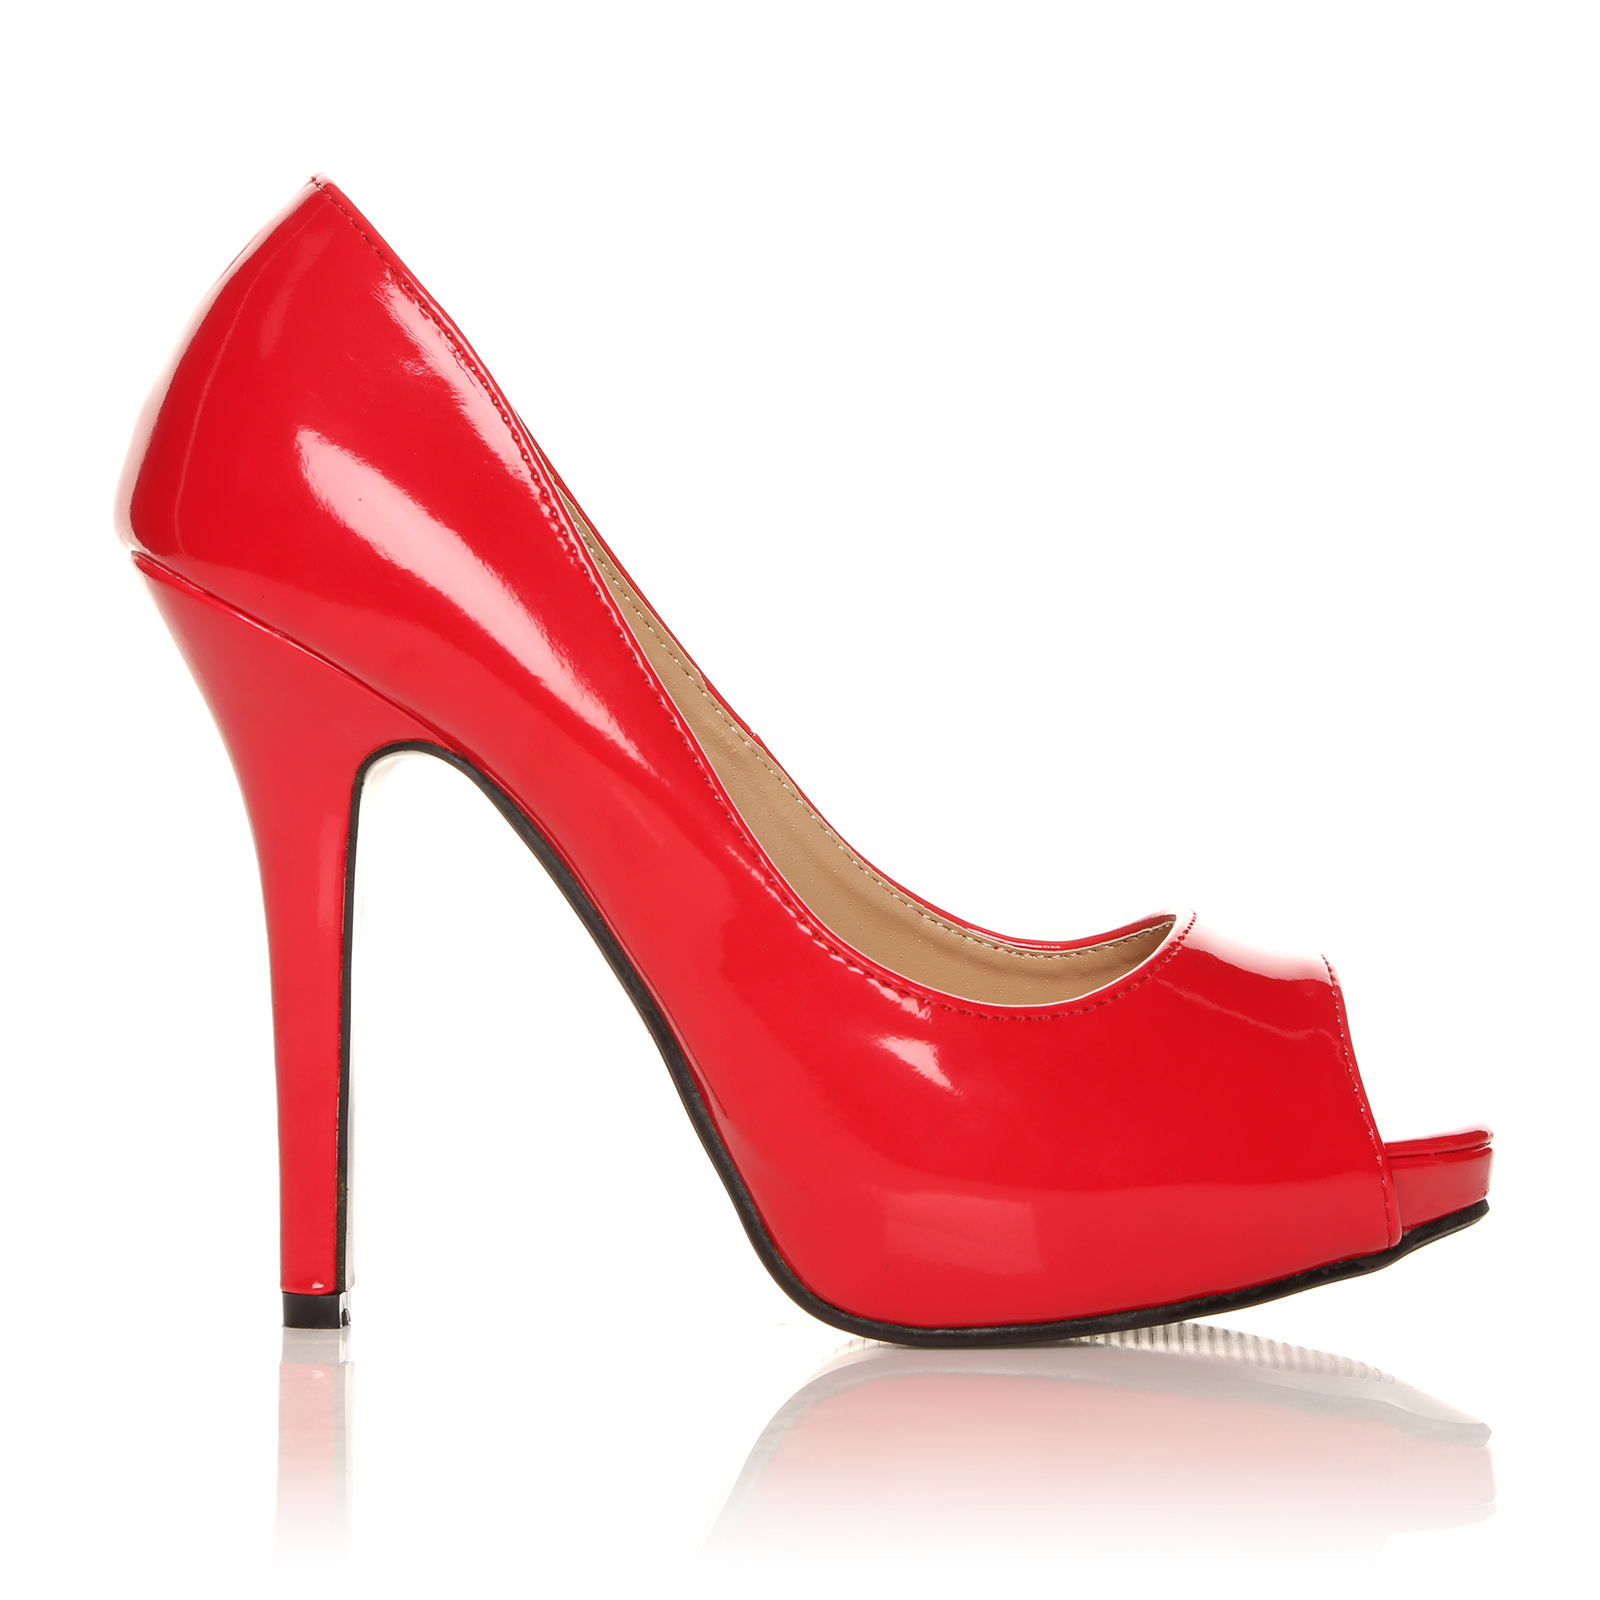 FIND Women's Pumps Closed-Toe Stiletto Shoes 5 UK (38 EU) Free Shipping Cost C3N7a